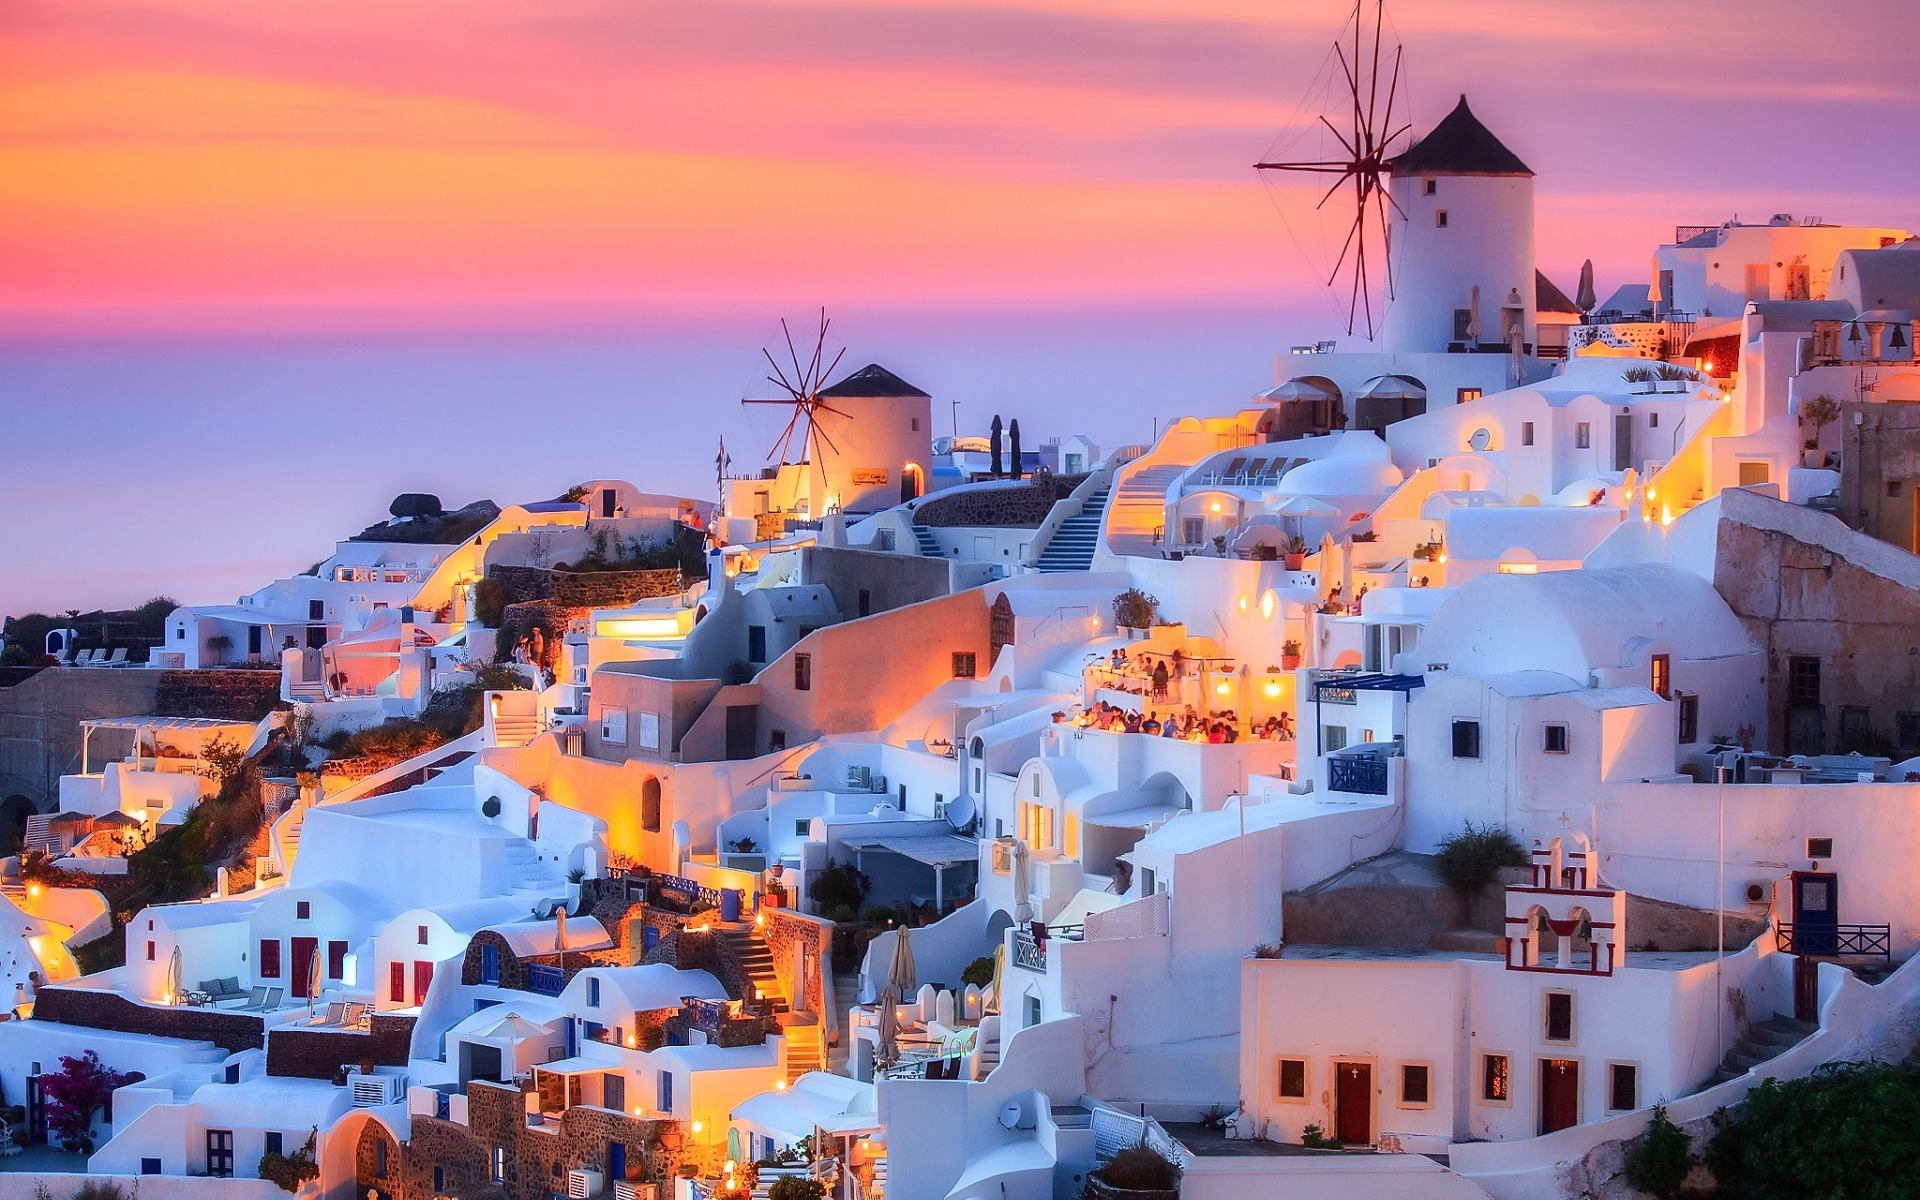 Download wallpapers Santorini Thira island Aegean Sea Greece 1920x1200